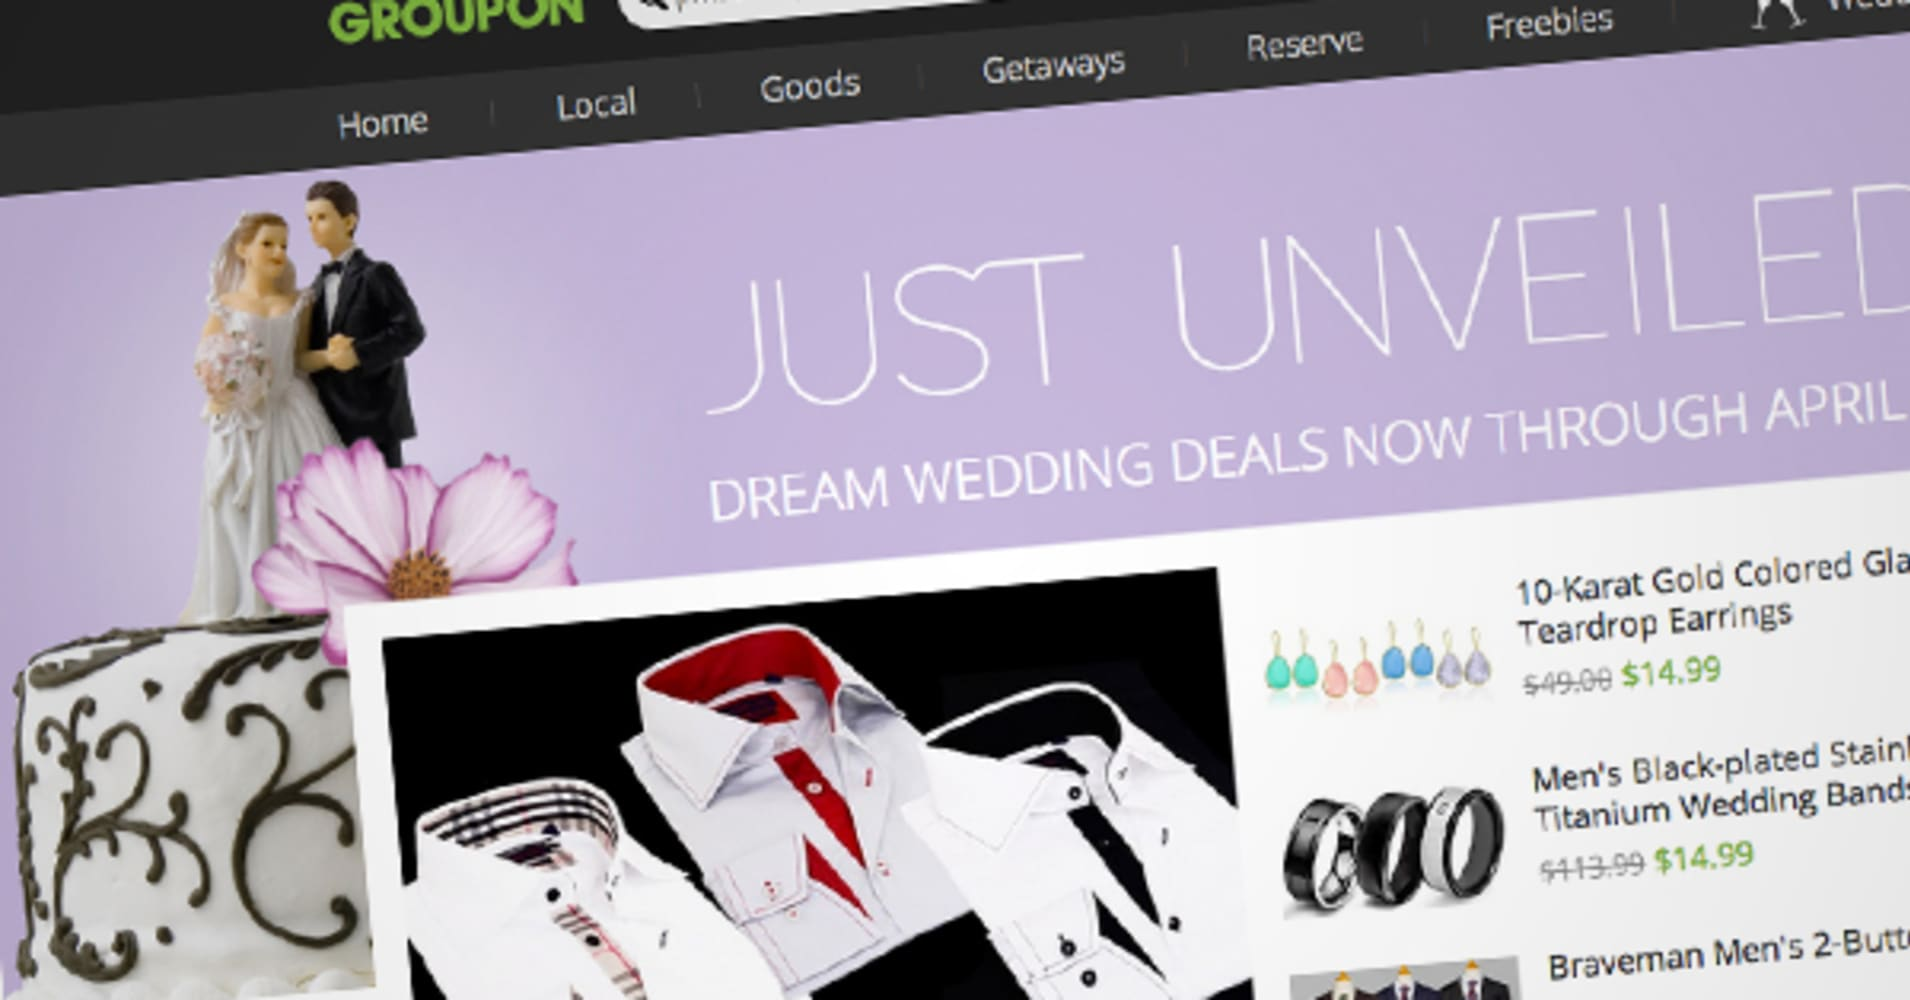 Groupon lets you save 10k on your engagement ring buycottarizona Image collections